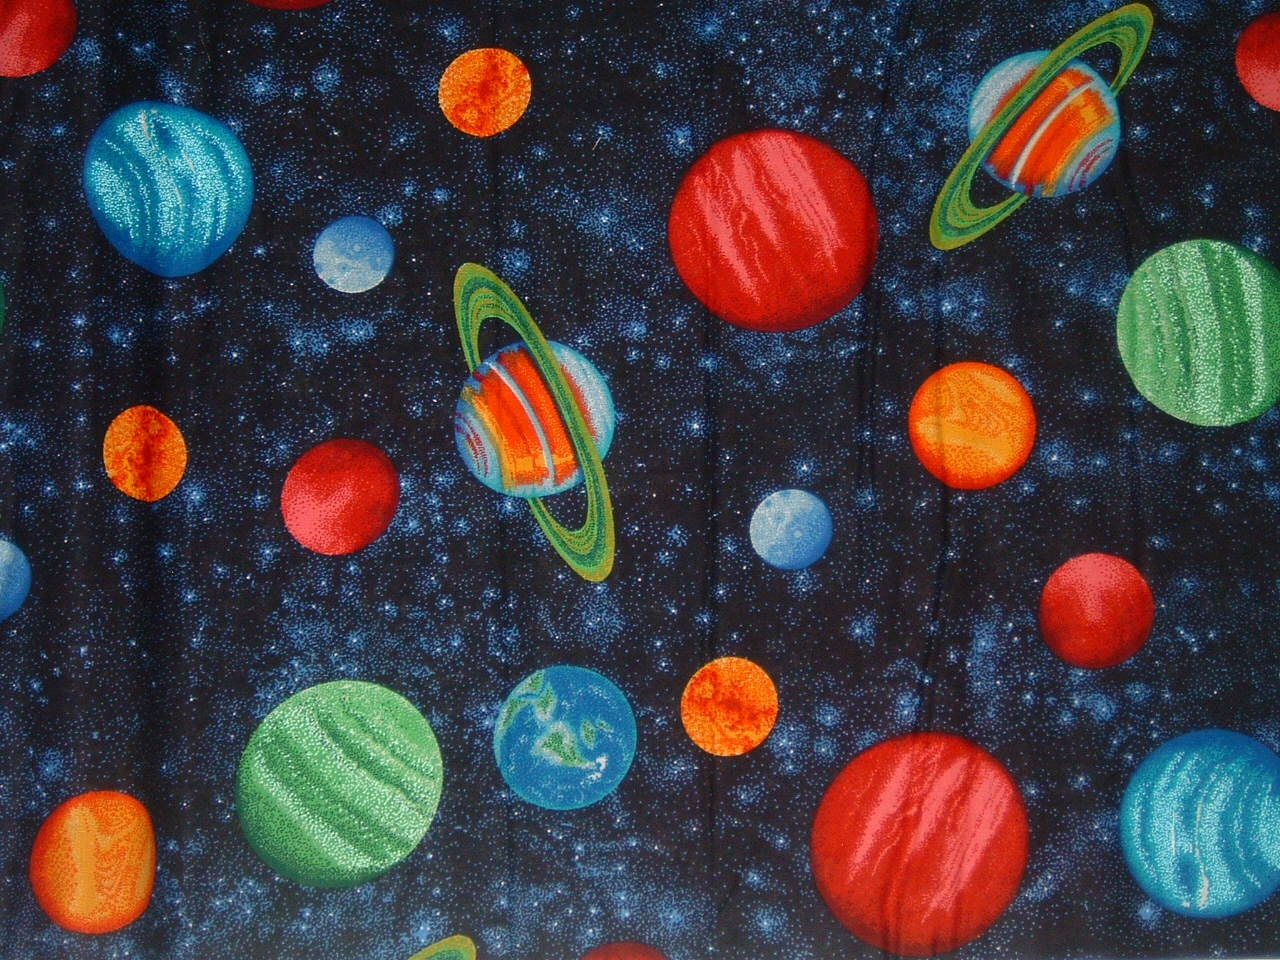 Planet solar system planets earth cotton fabric by the yard by for Fabric planets solar system